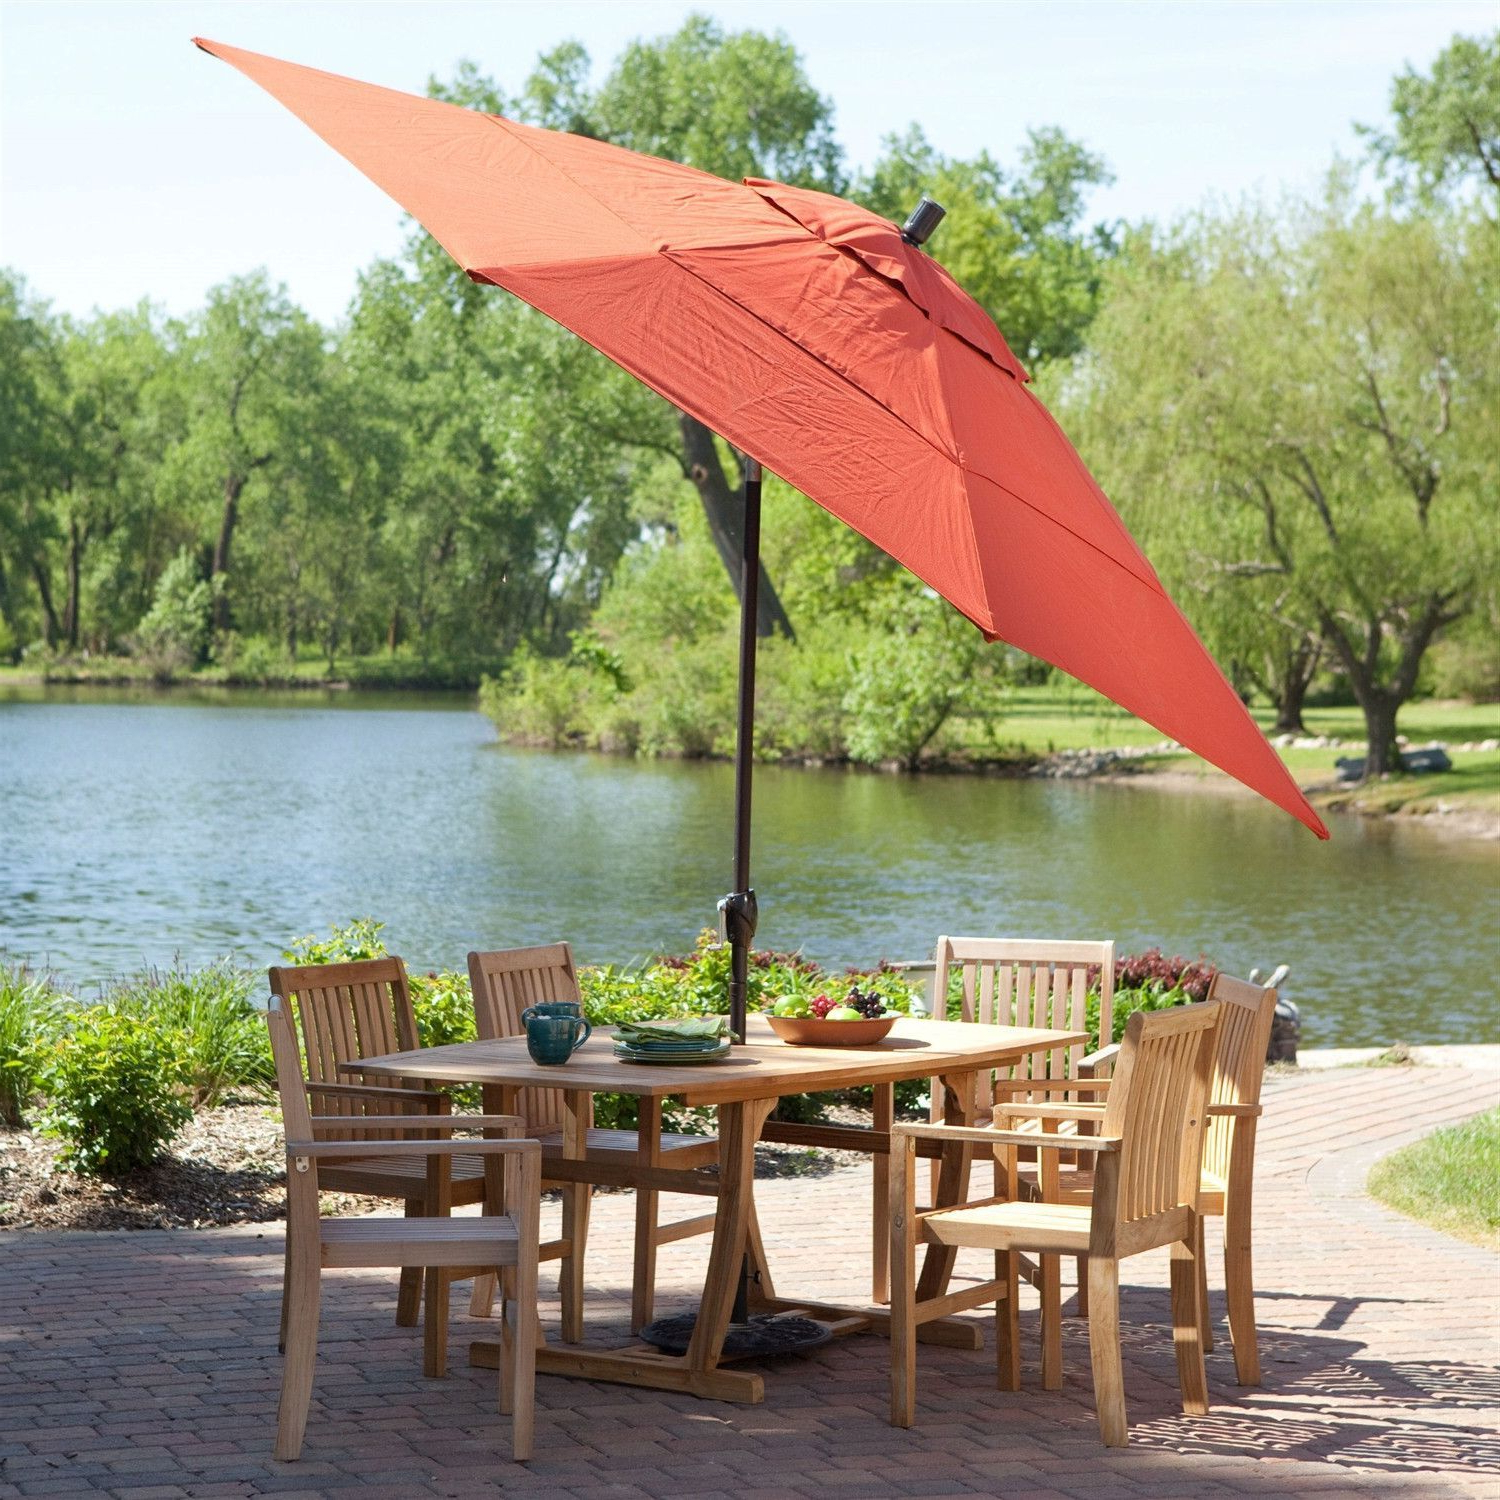 Most Recently Released Priscilla Market Umbrellas Within 11 Ft Patio Umbrella With Brick Red Canopy And Metal Pole (View 5 of 20)